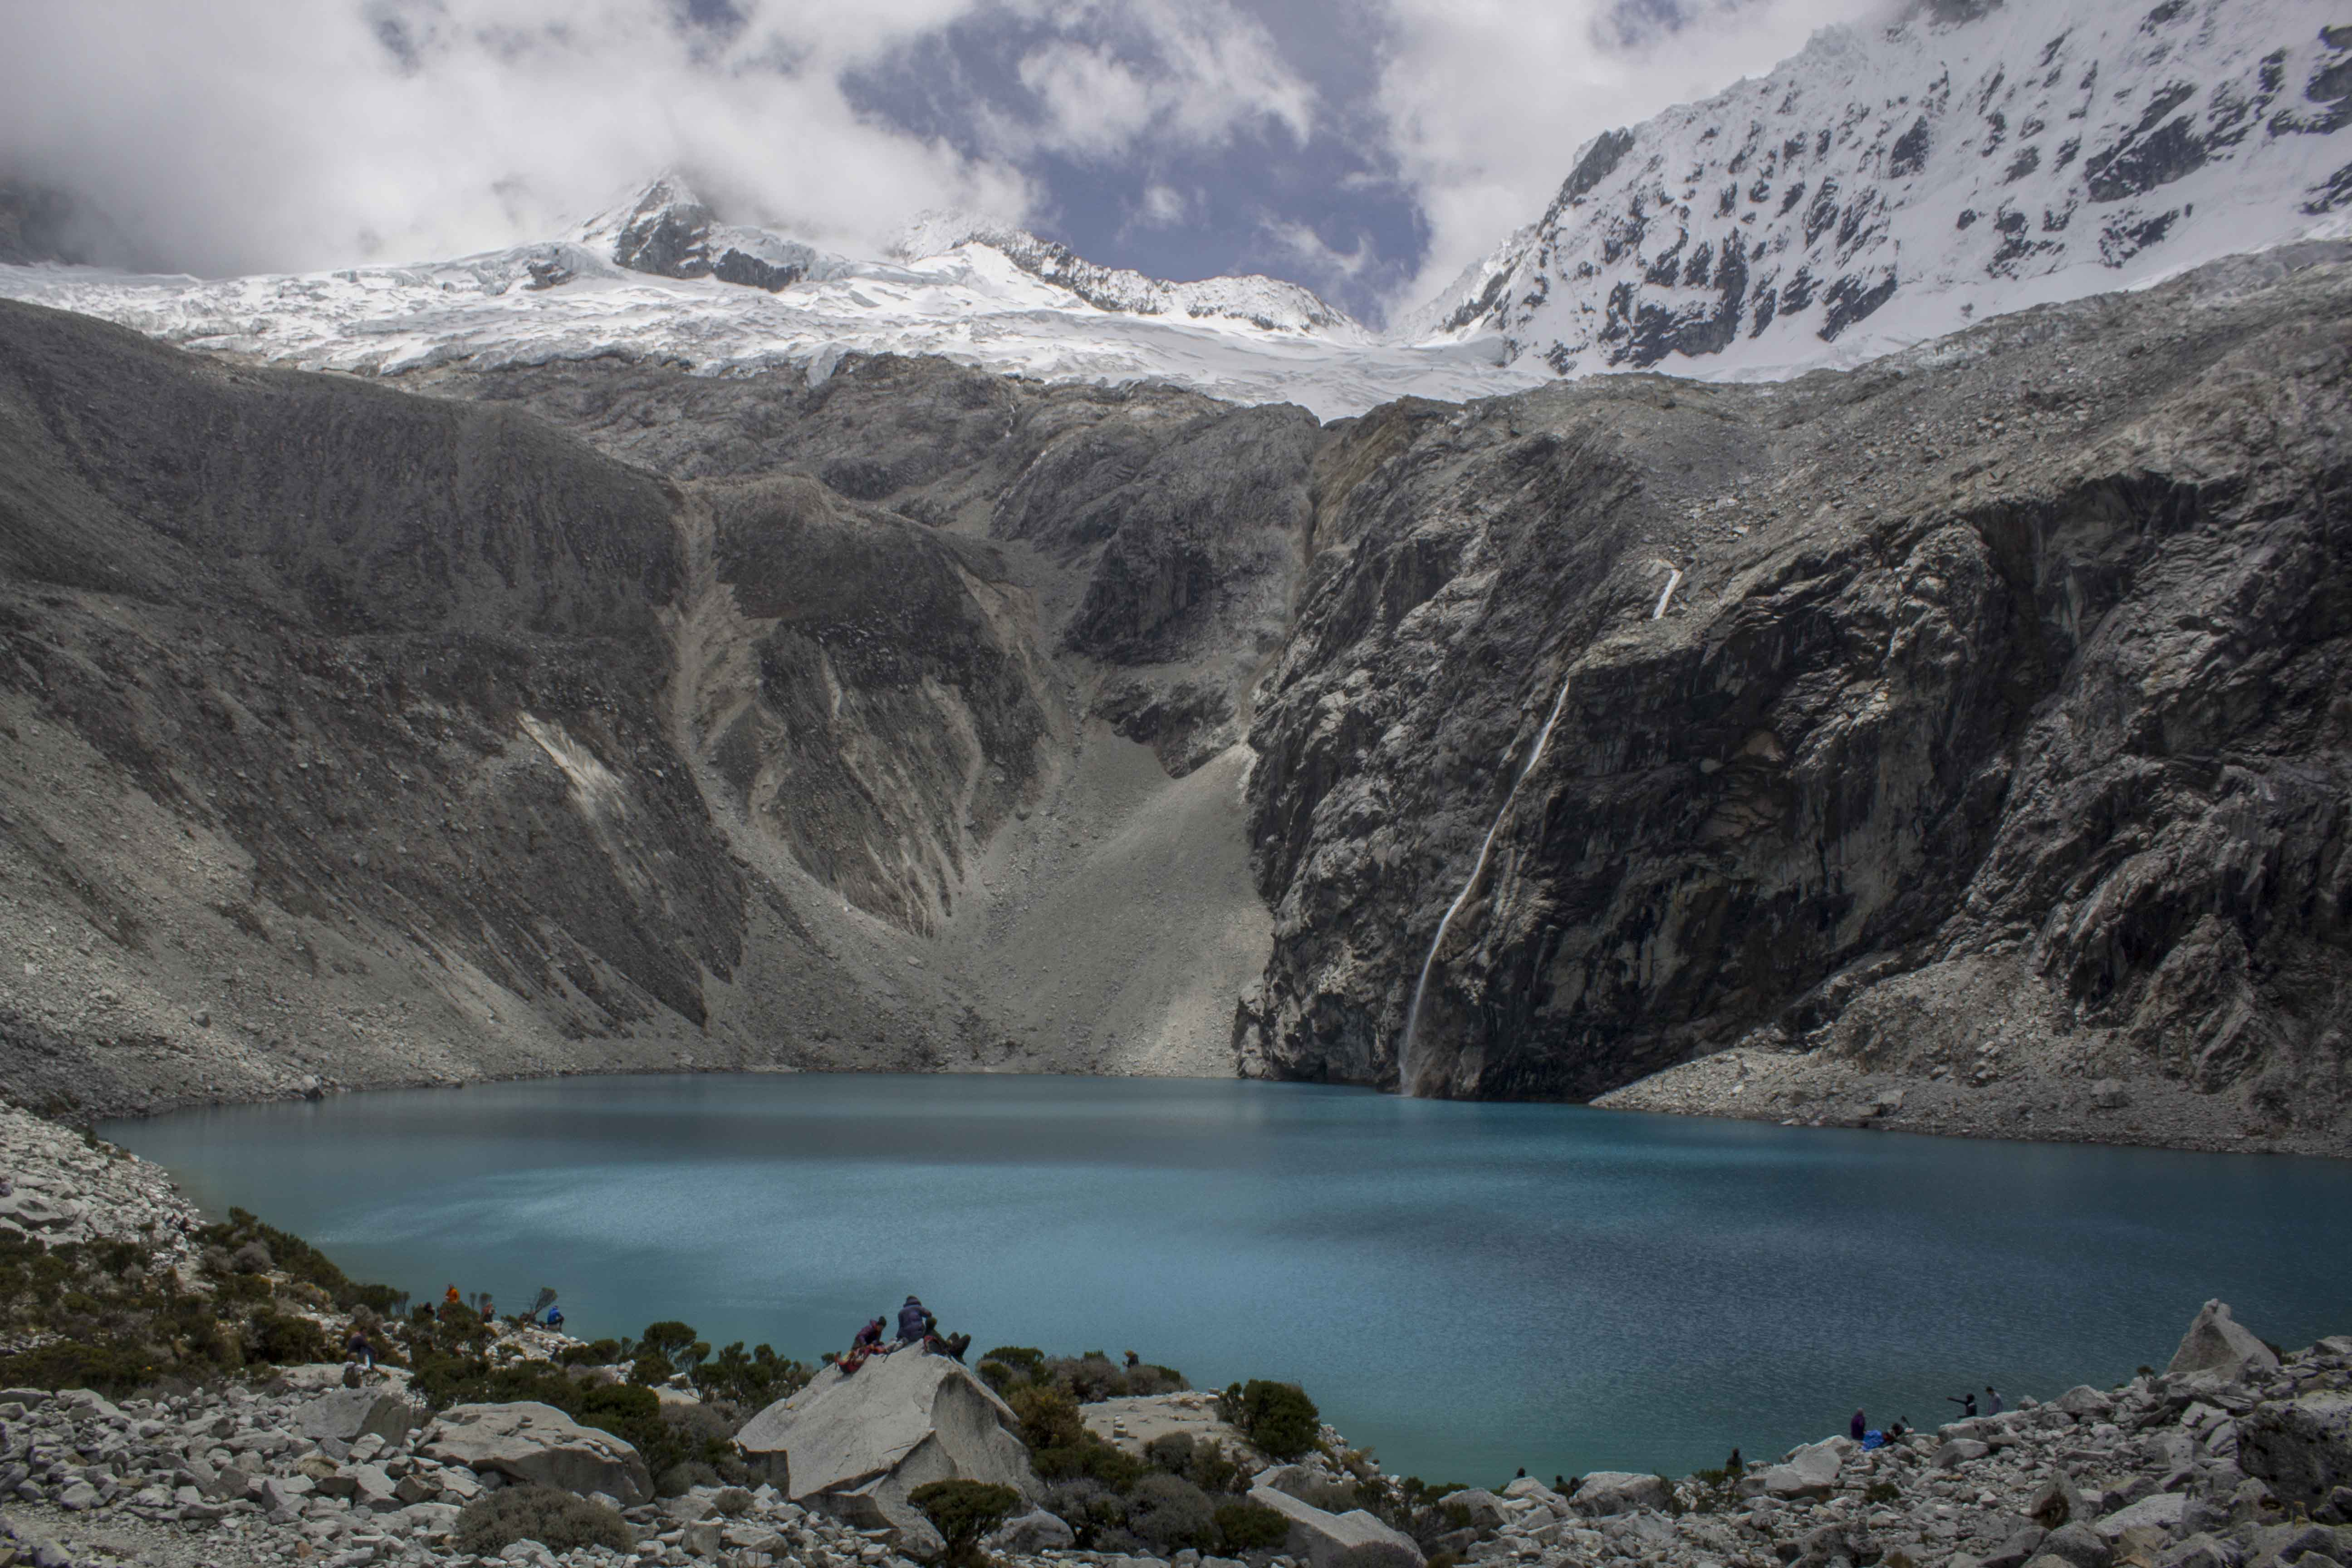 Laguna 69 in Northern Peru